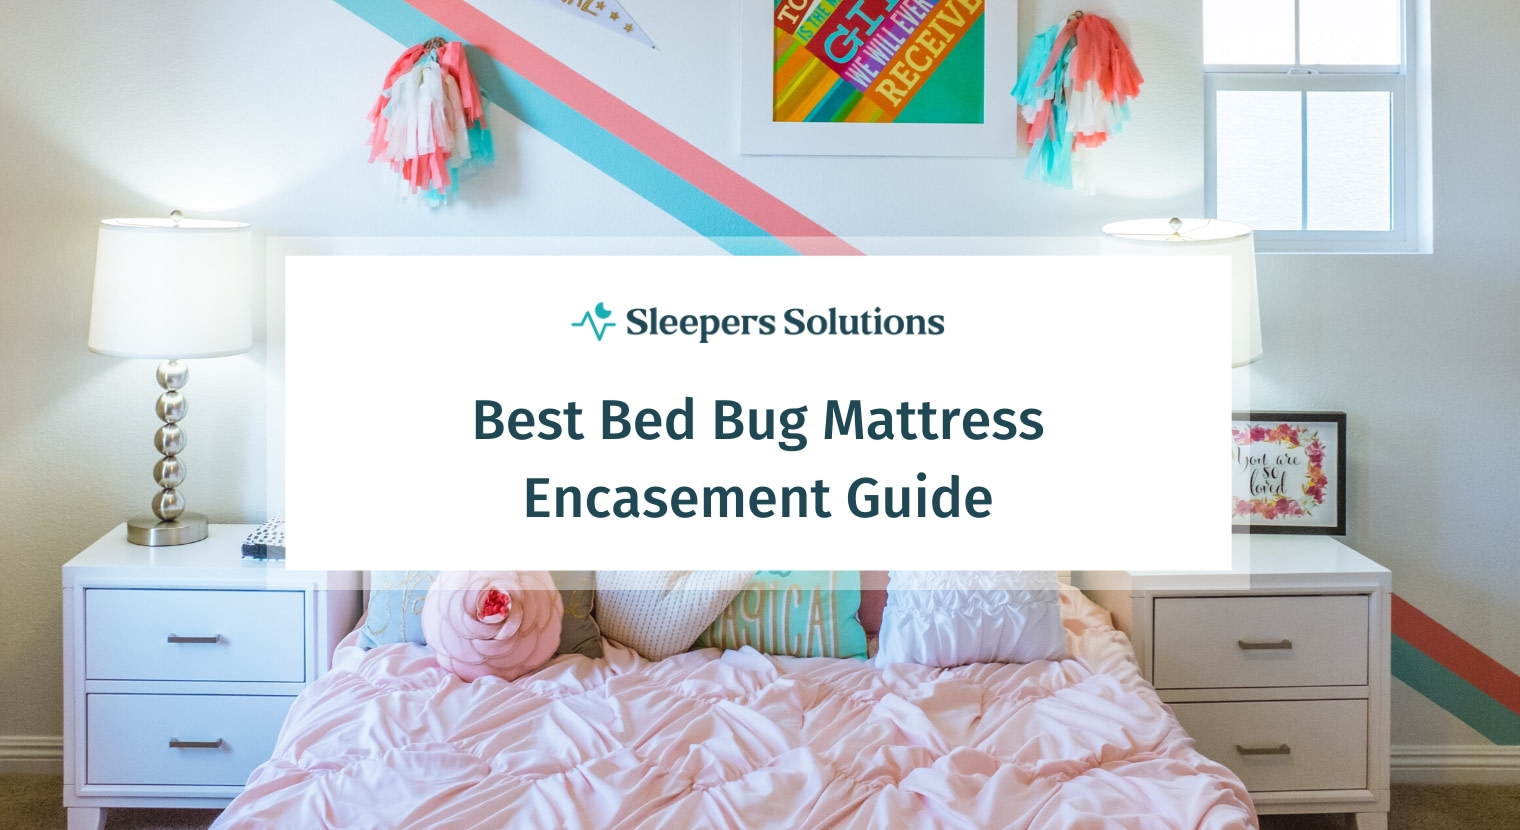 Best Bed Bug Mattress Encasement Guide